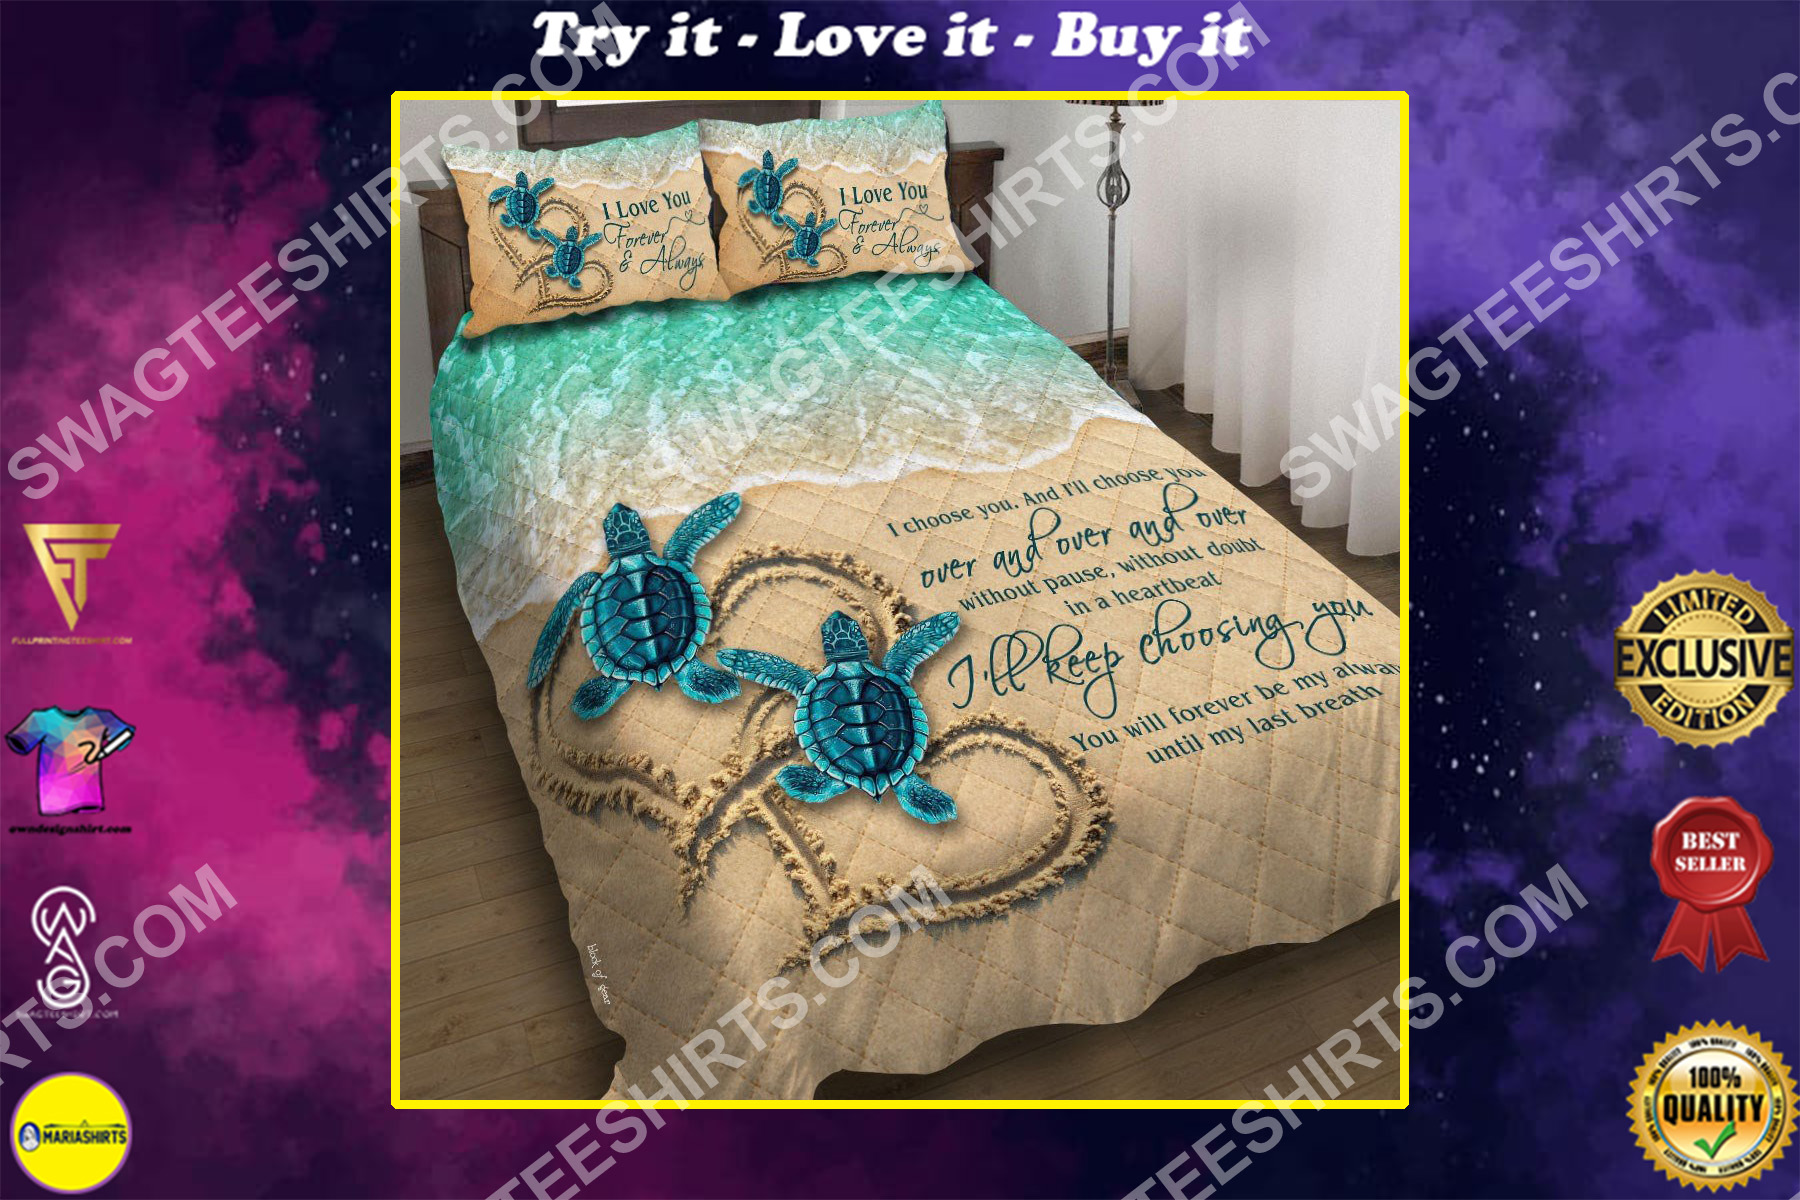 sea turtle ill keep choosing you all over printed bedding set